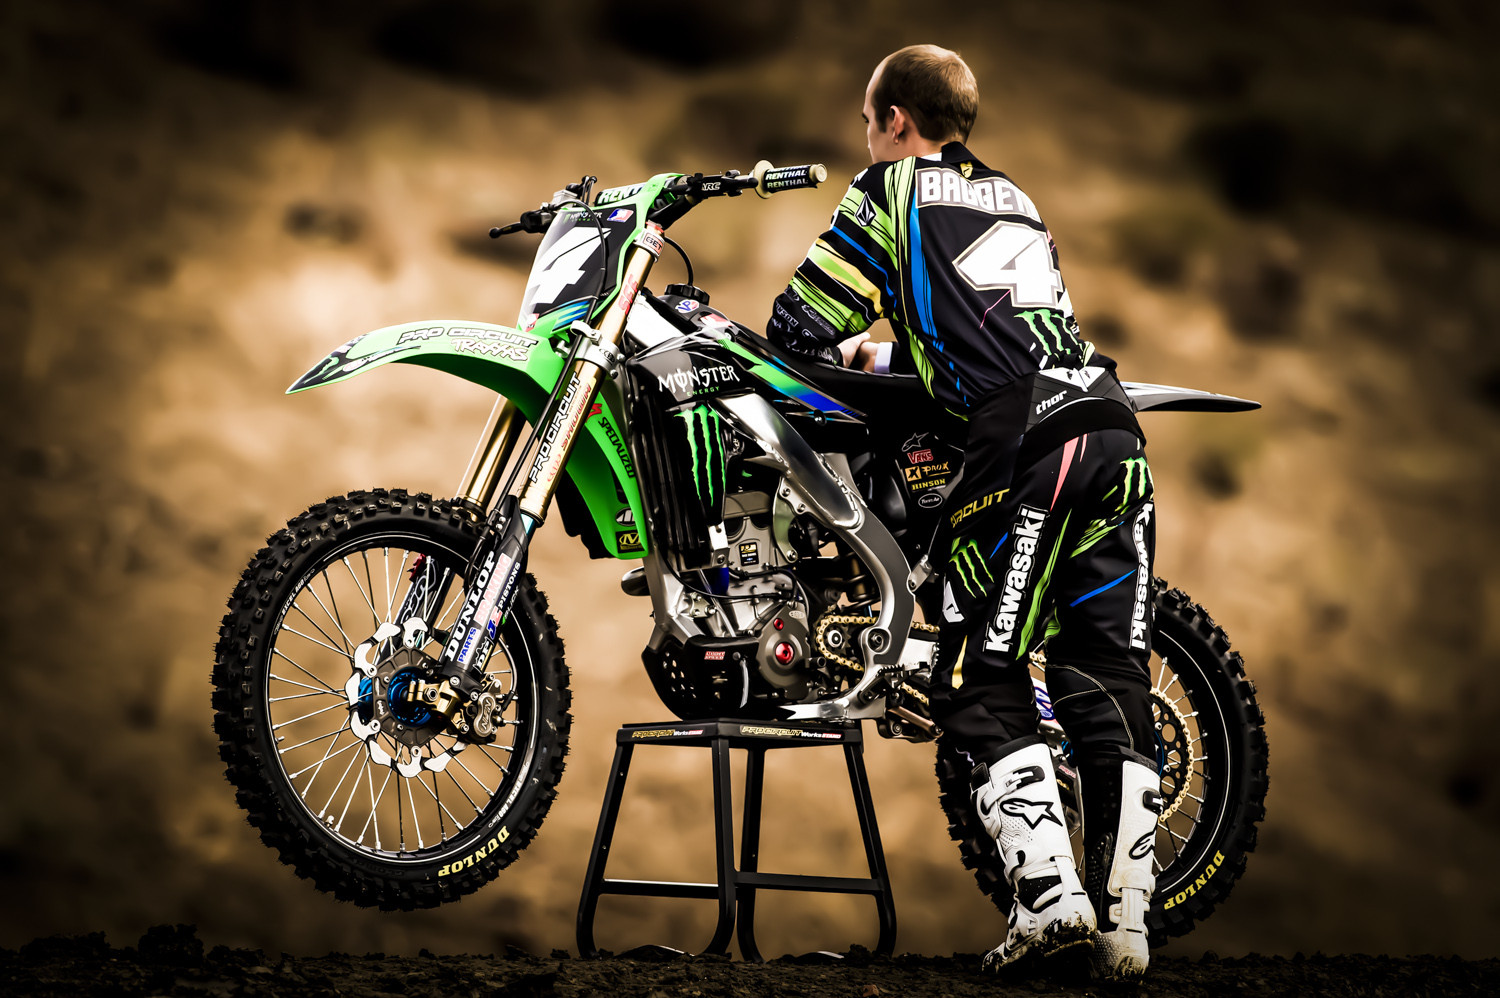 Blake Baggett - Monster Energy Pro Circuit Kawasaki - Motocross Pictures - Vital MX